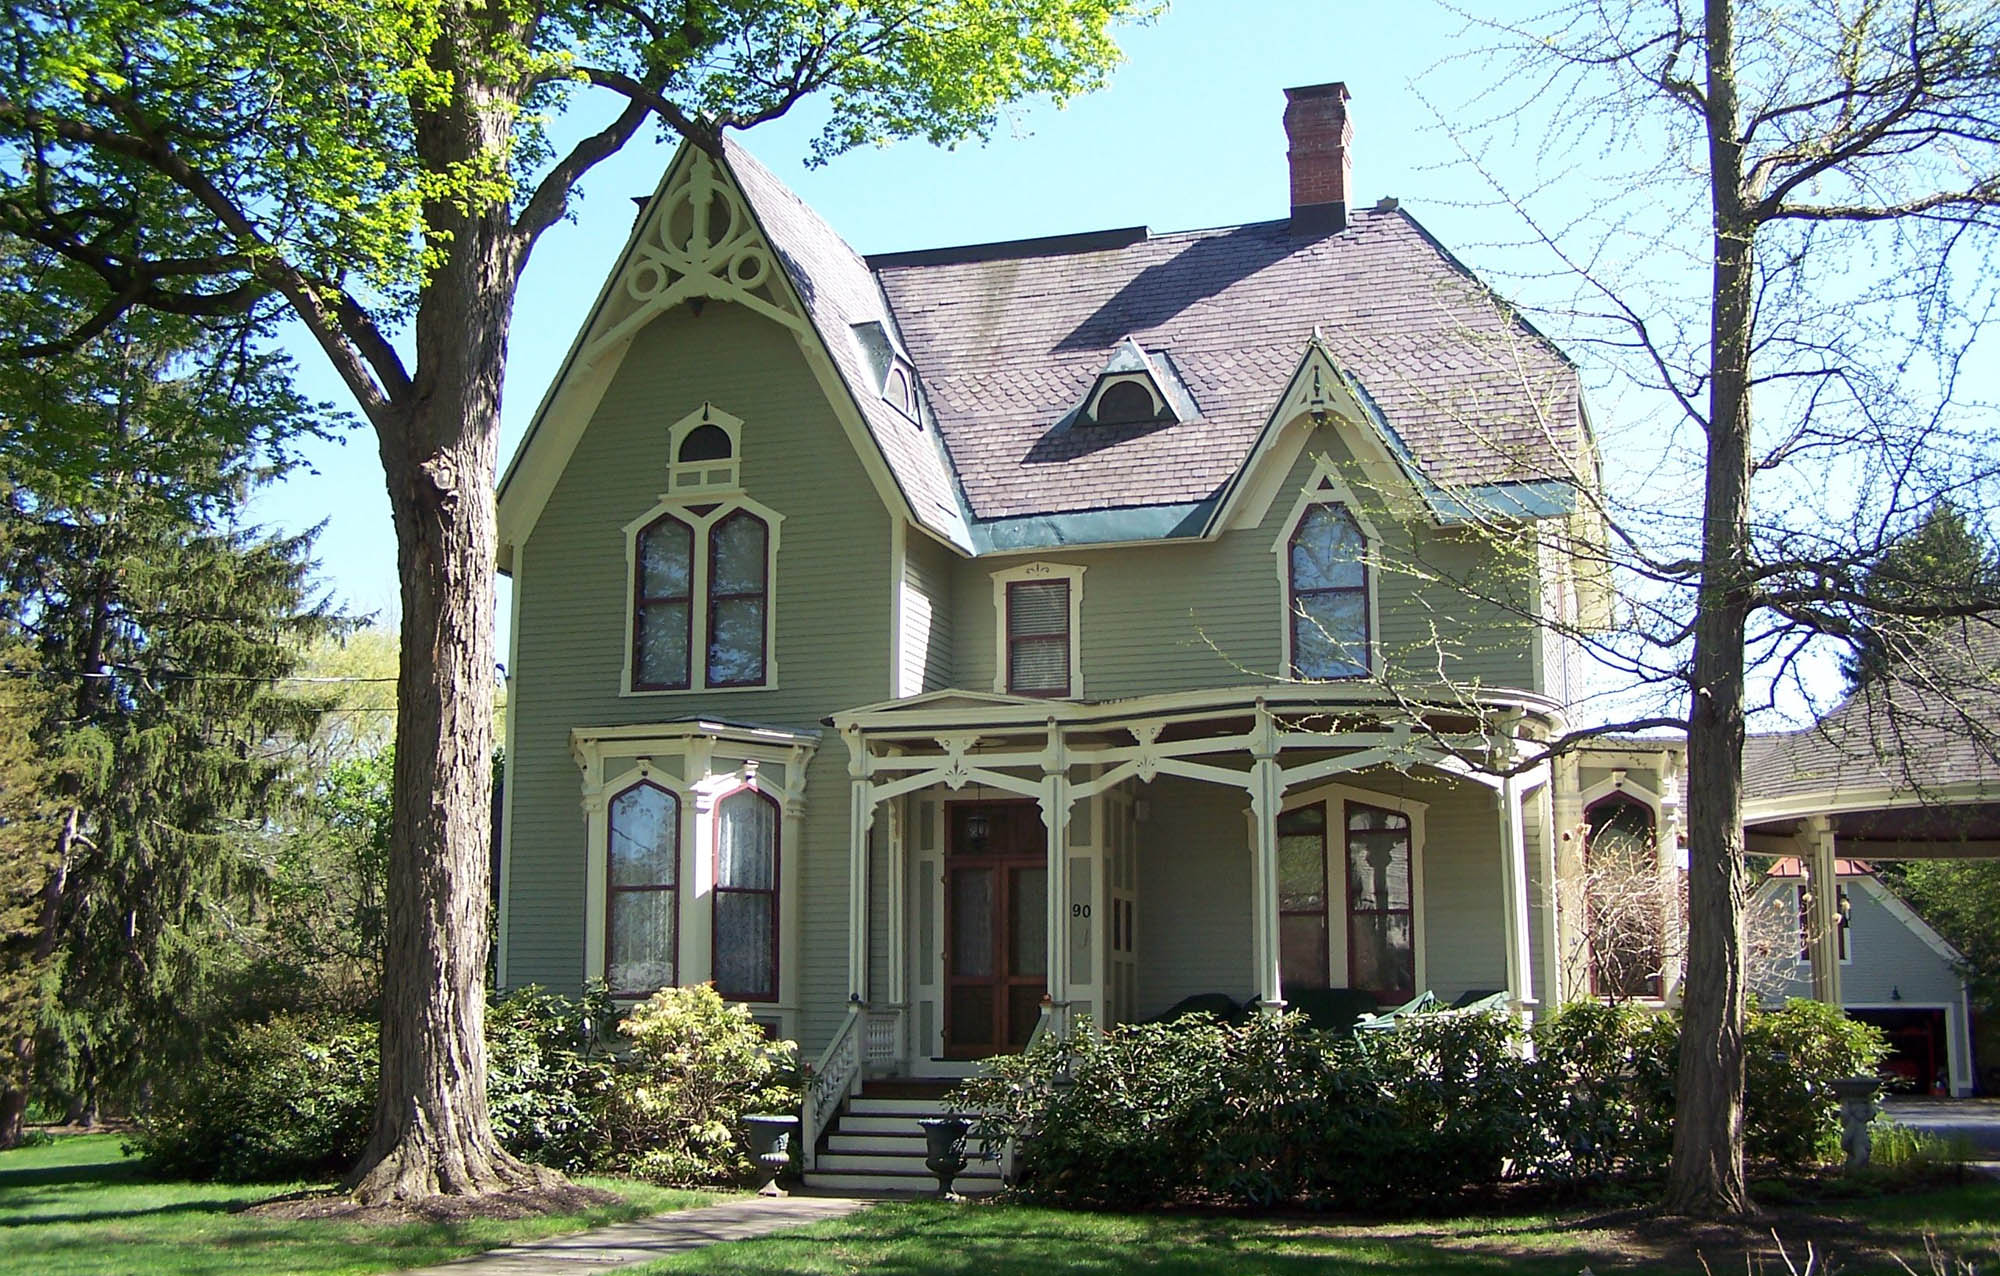 green house color ideas - victorian styled green house idea with light tan trim